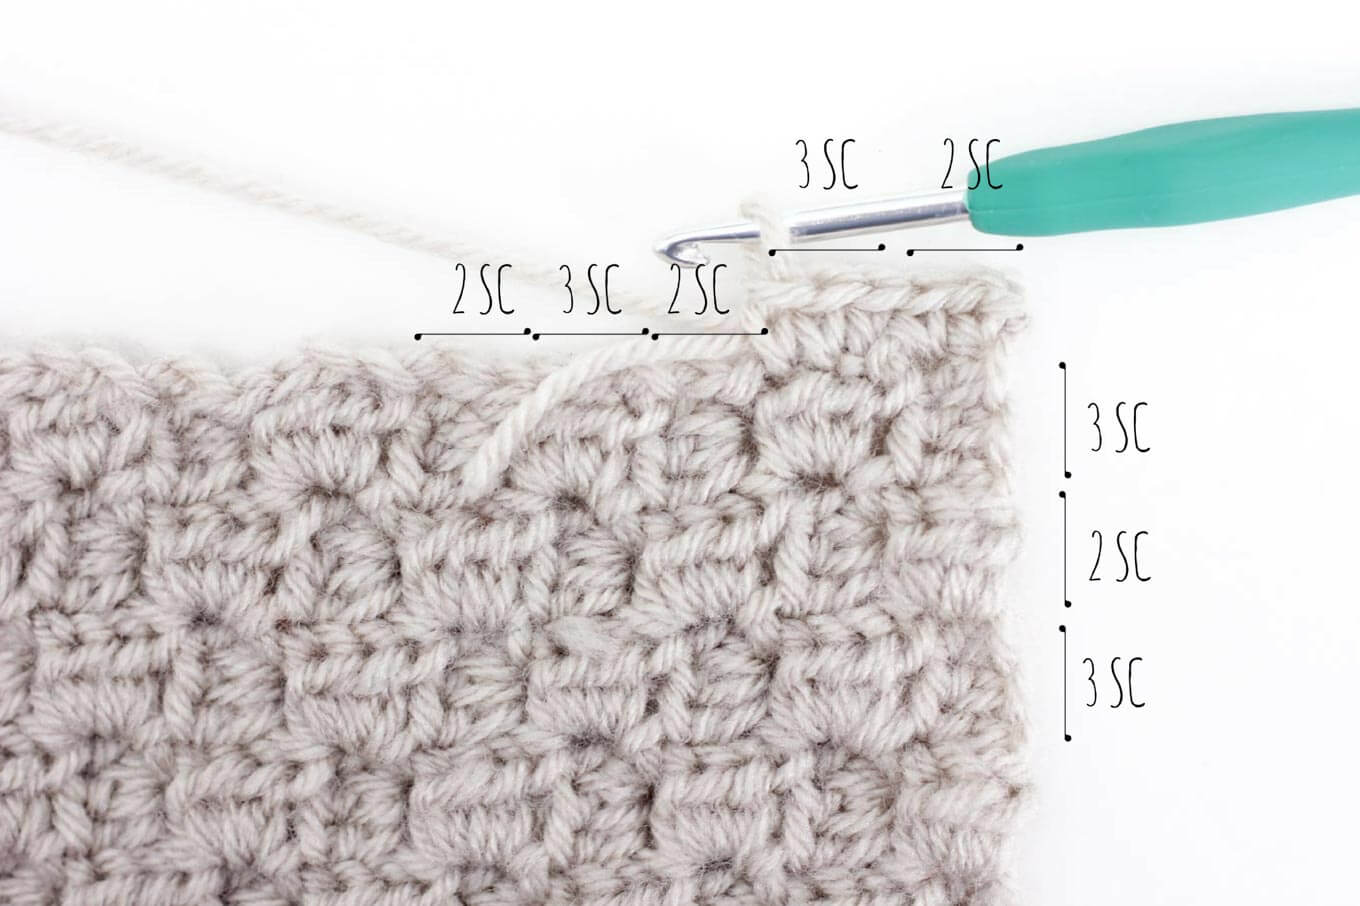 You've worked diligently on creating corner-to-corner crochet squares and now you're wondering what to do with them, right? This tutorial will show you how to add a border to a C2C afghan block so that it's ready to be sewn together into a blanket.